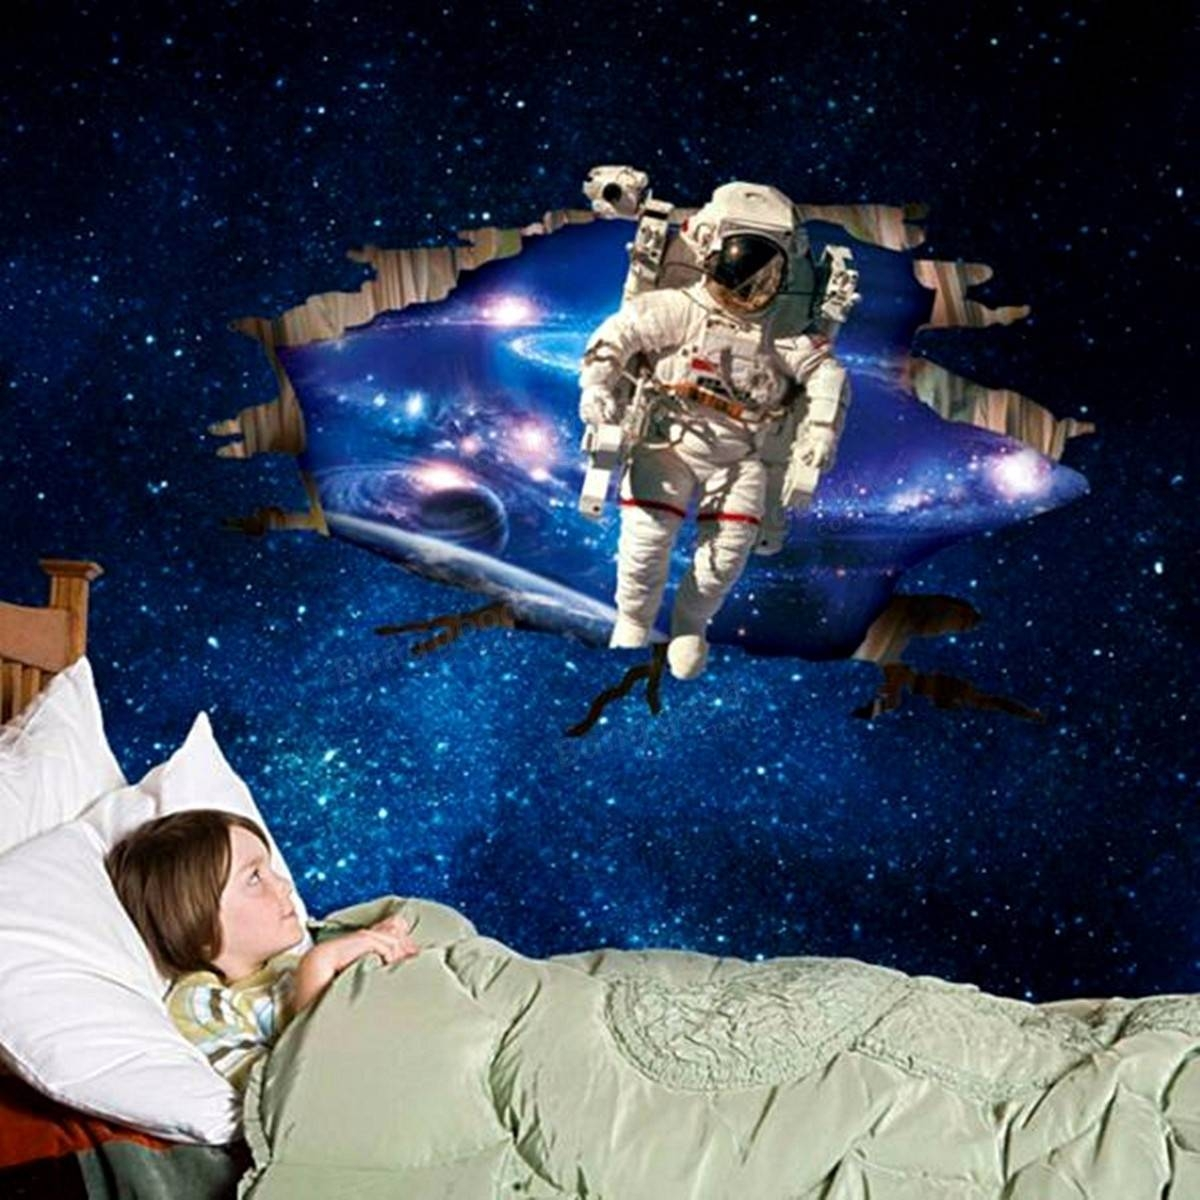 3D Wall Stickers Wallpaper Space Astronauts Decor Kids Room Decal Throughout 2017 Astronaut 3D Wall Art (View 10 of 20)